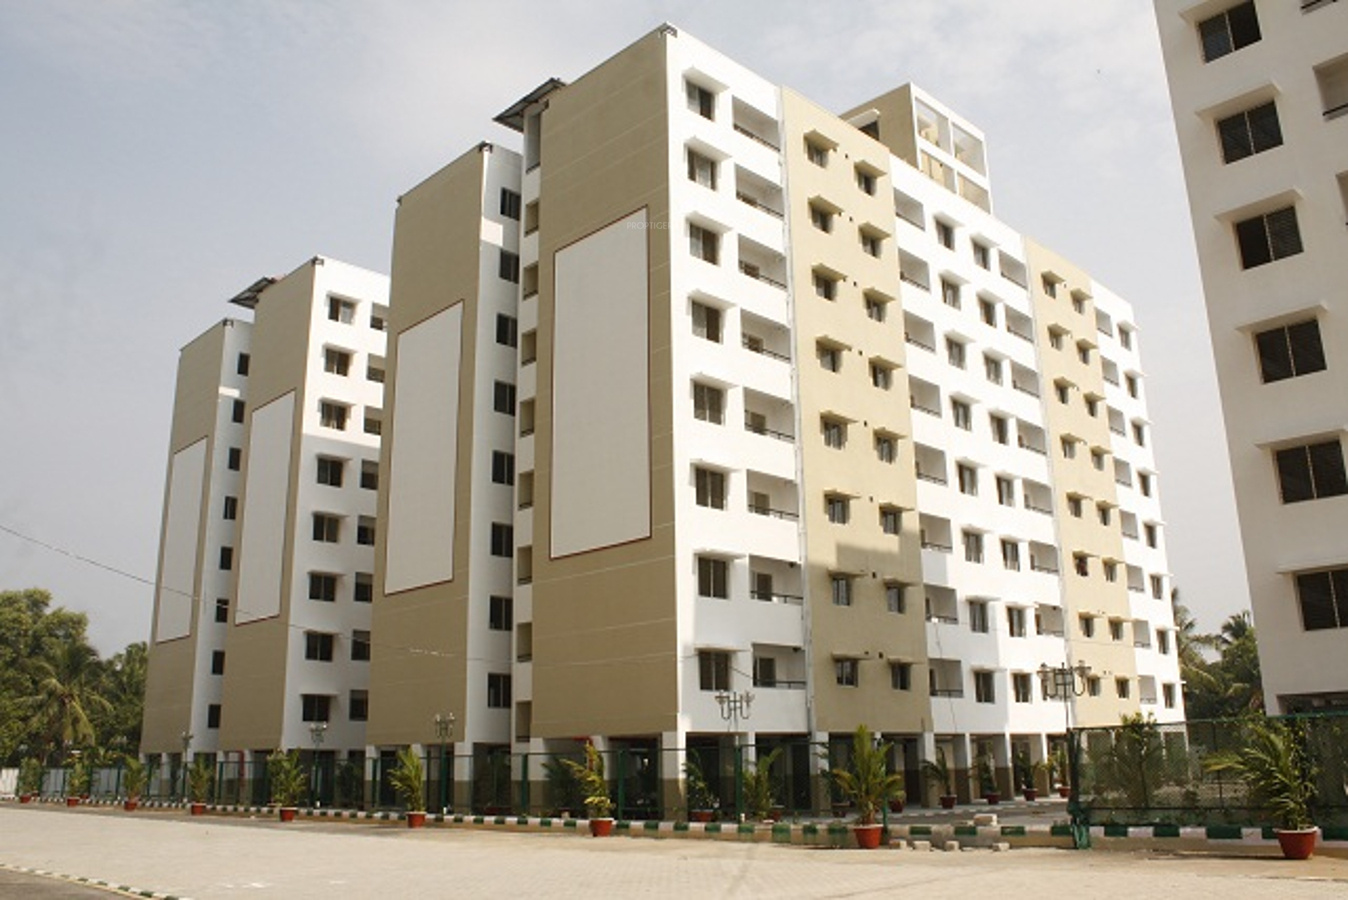 1 Beds 1 Baths 440 Sq Ft Plan 924 7: 924 Sq Ft 3 BHK 2T Apartment For Sale In Confident Group